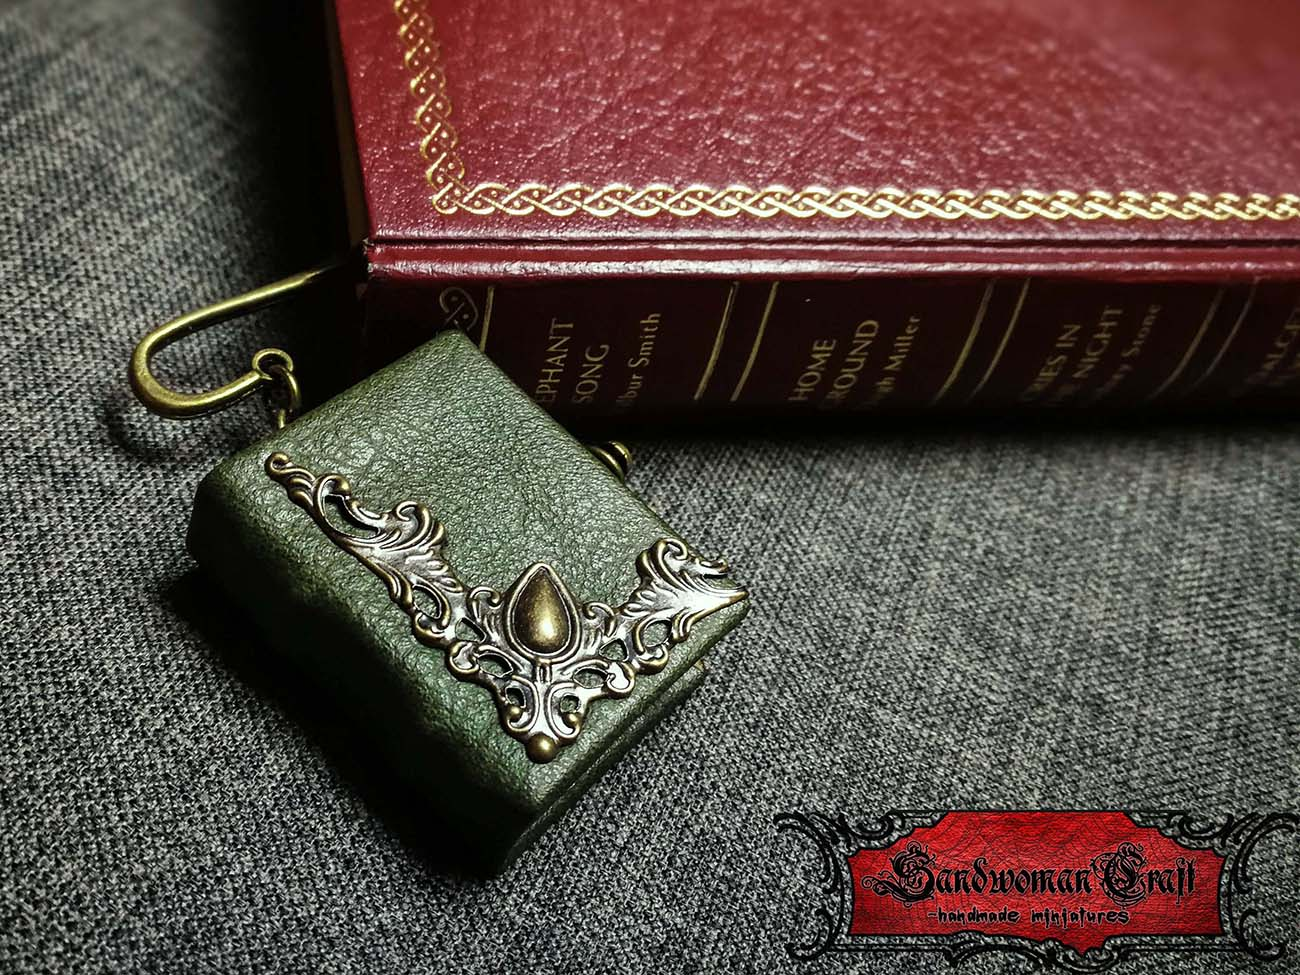 Bookmark page marker with miniature green leather book